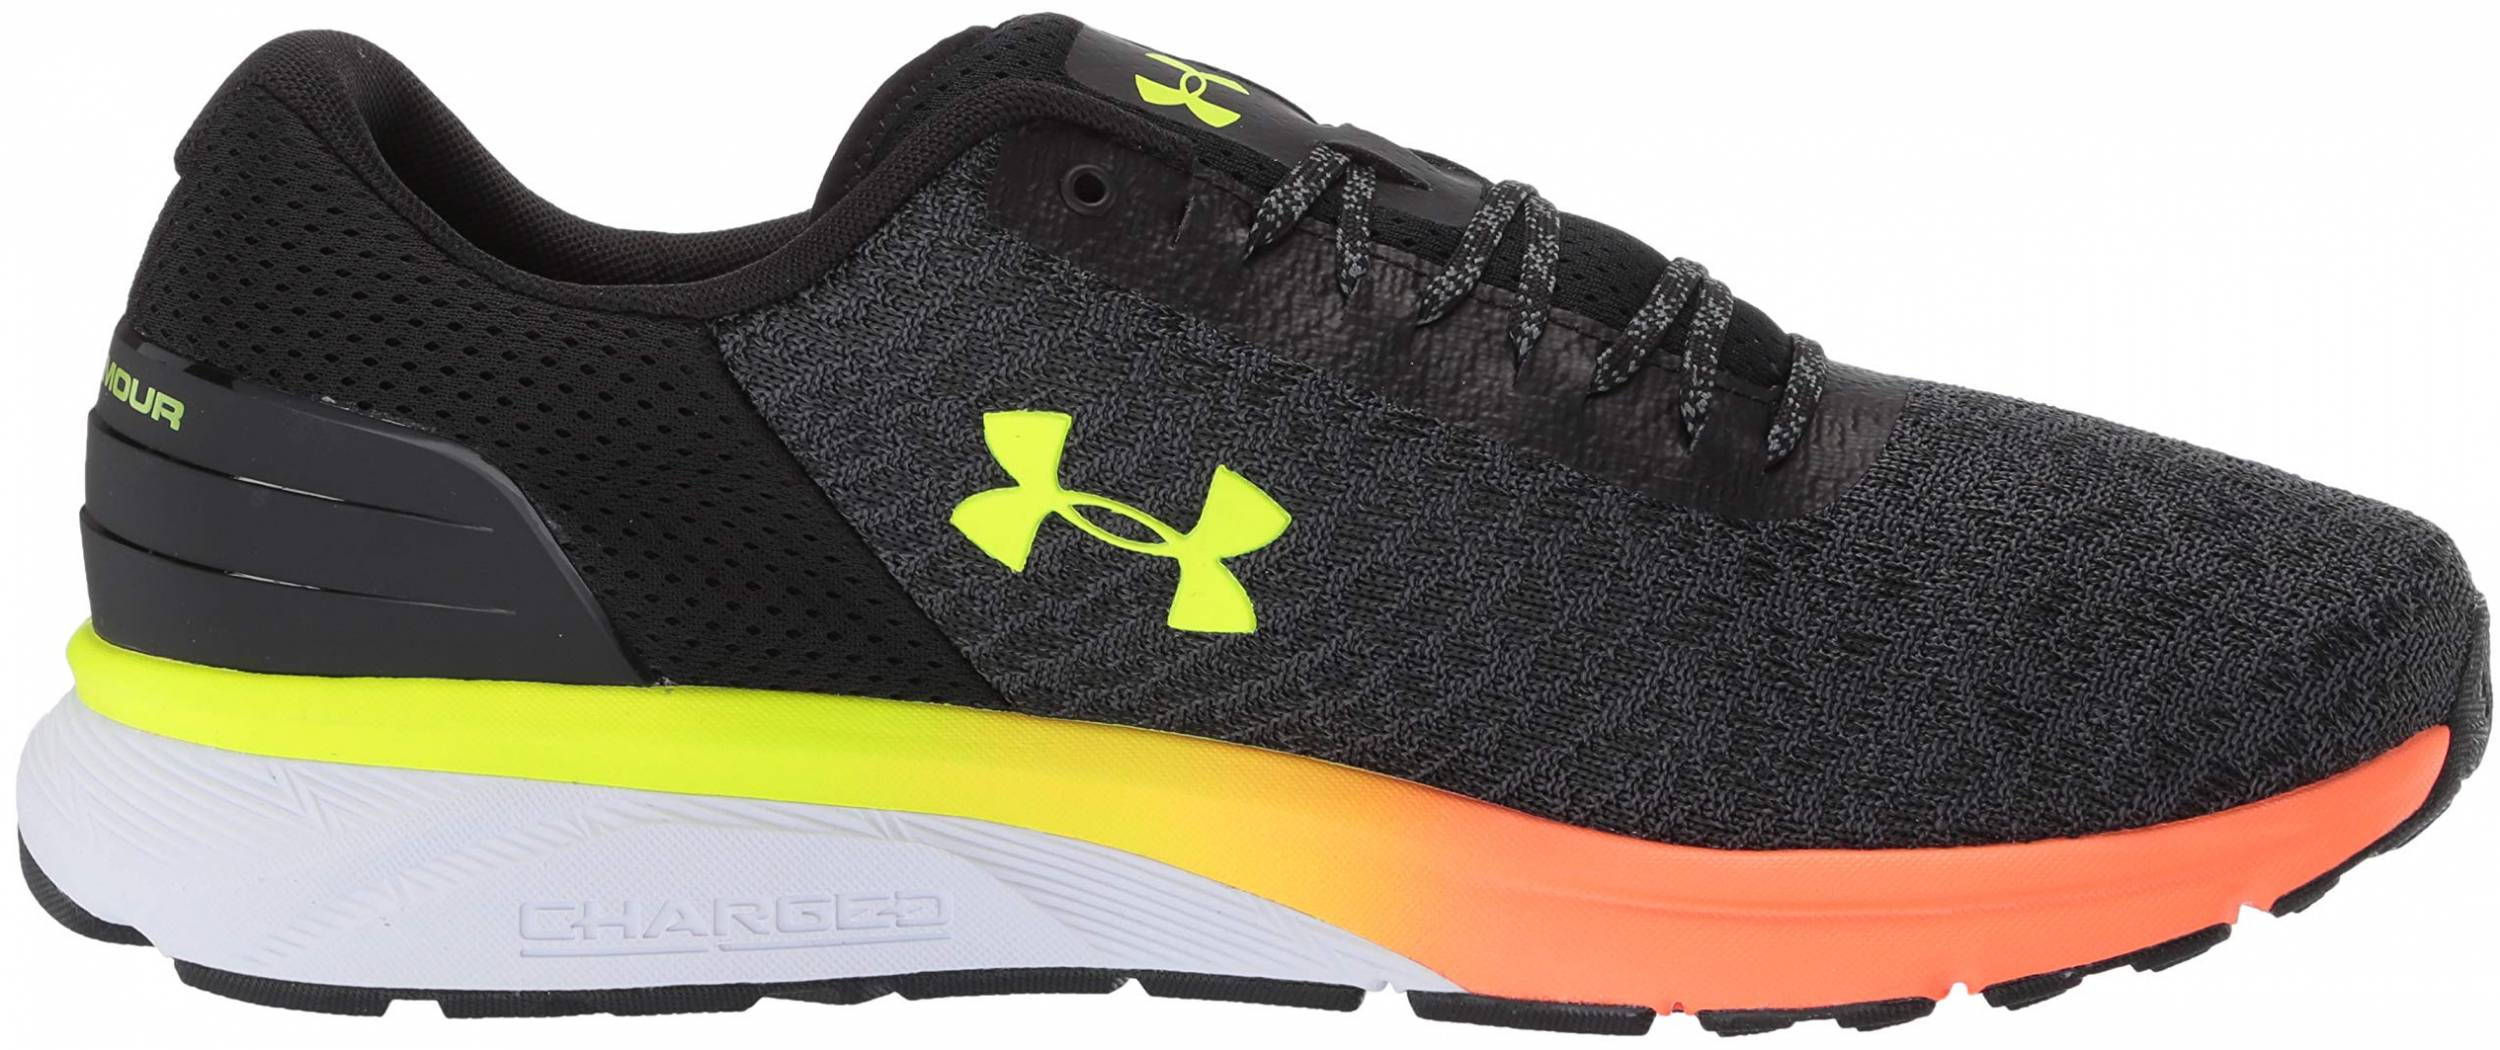 under armour charged spark test off 65